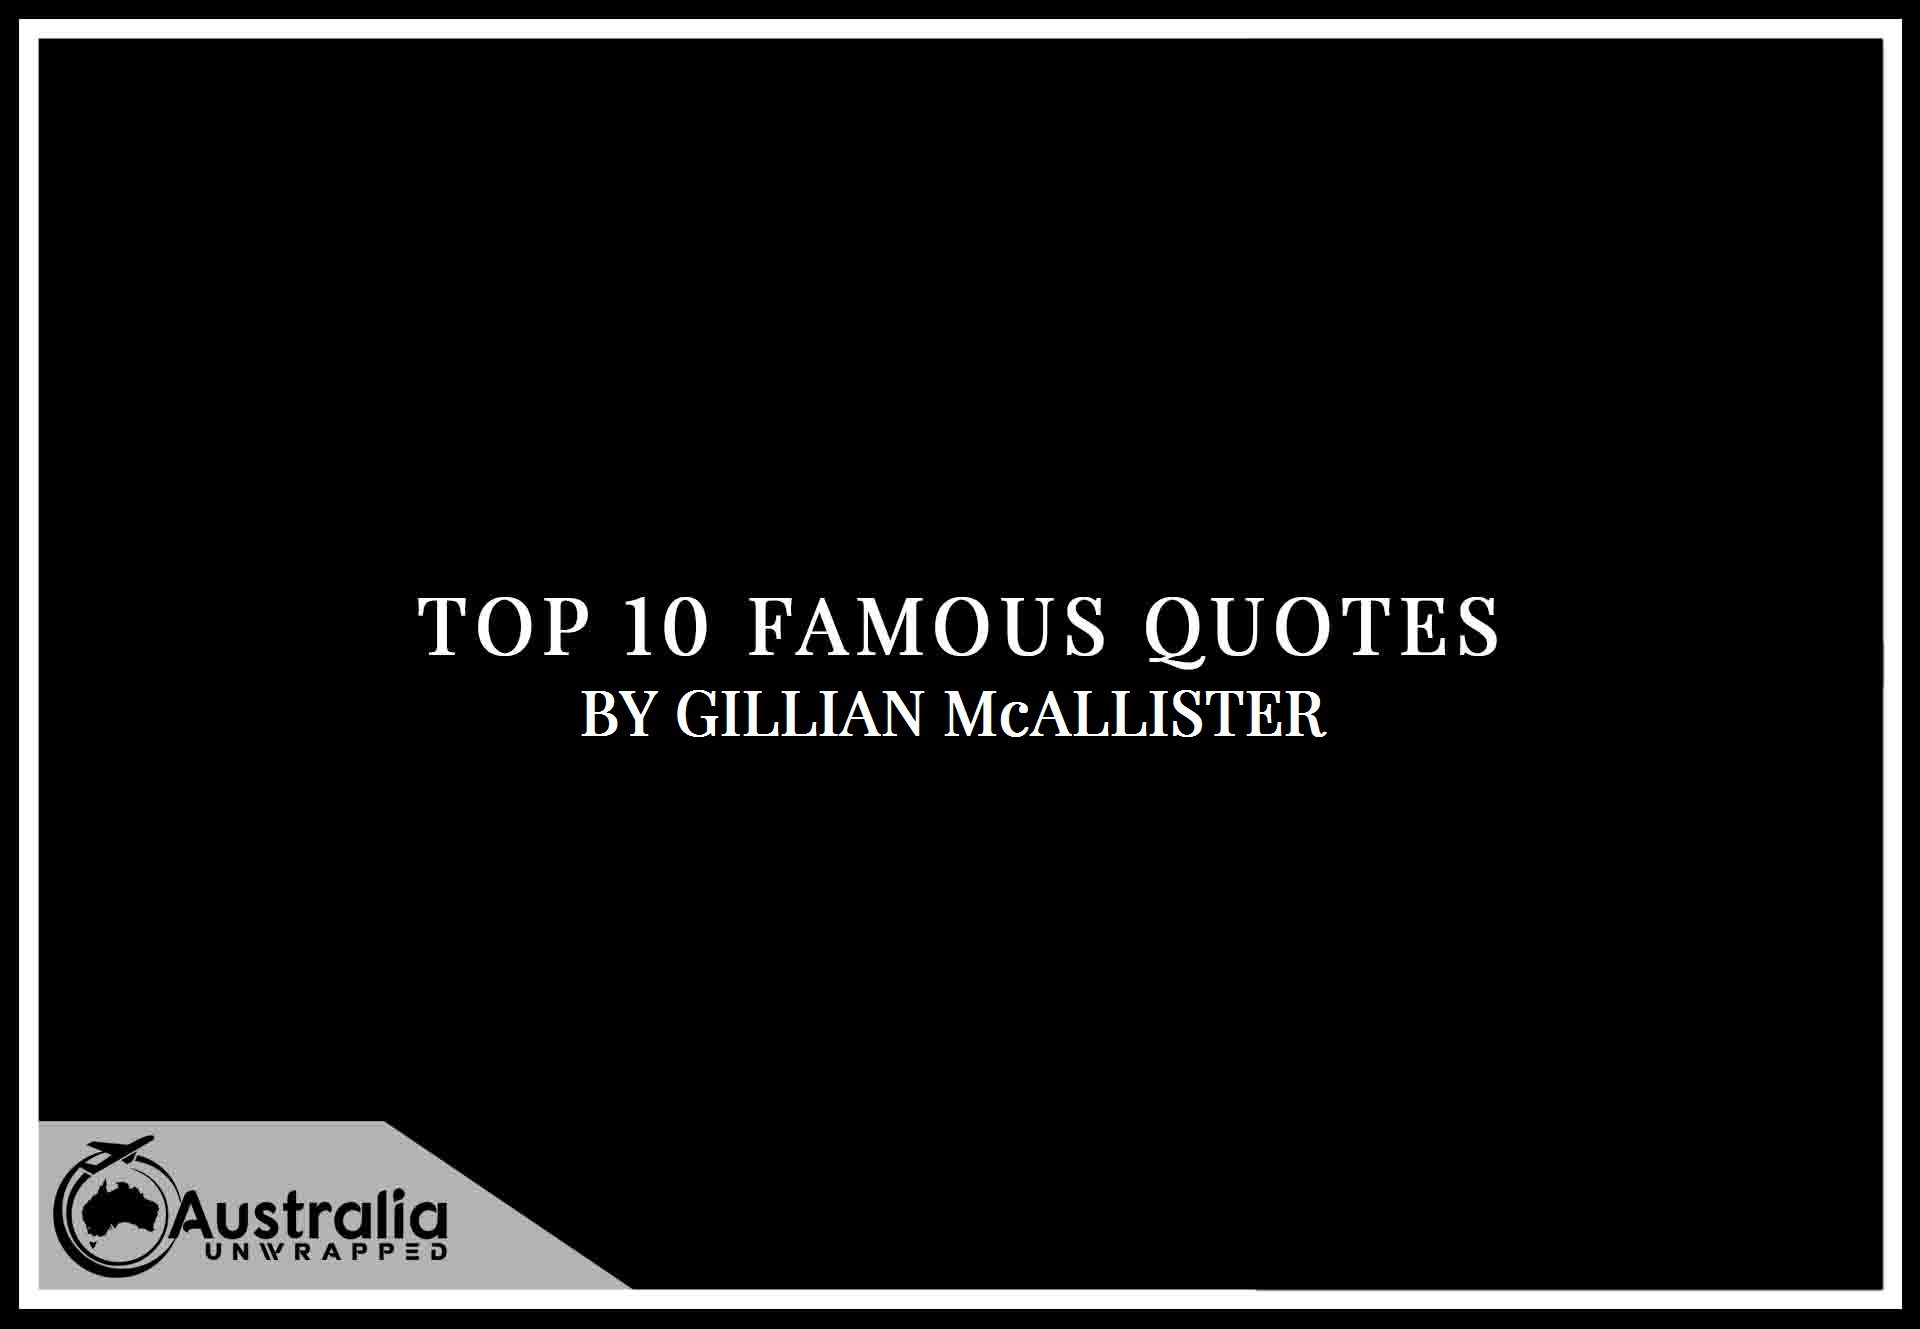 Gillian McAllister's Top 10 Popular and Famous Quotes